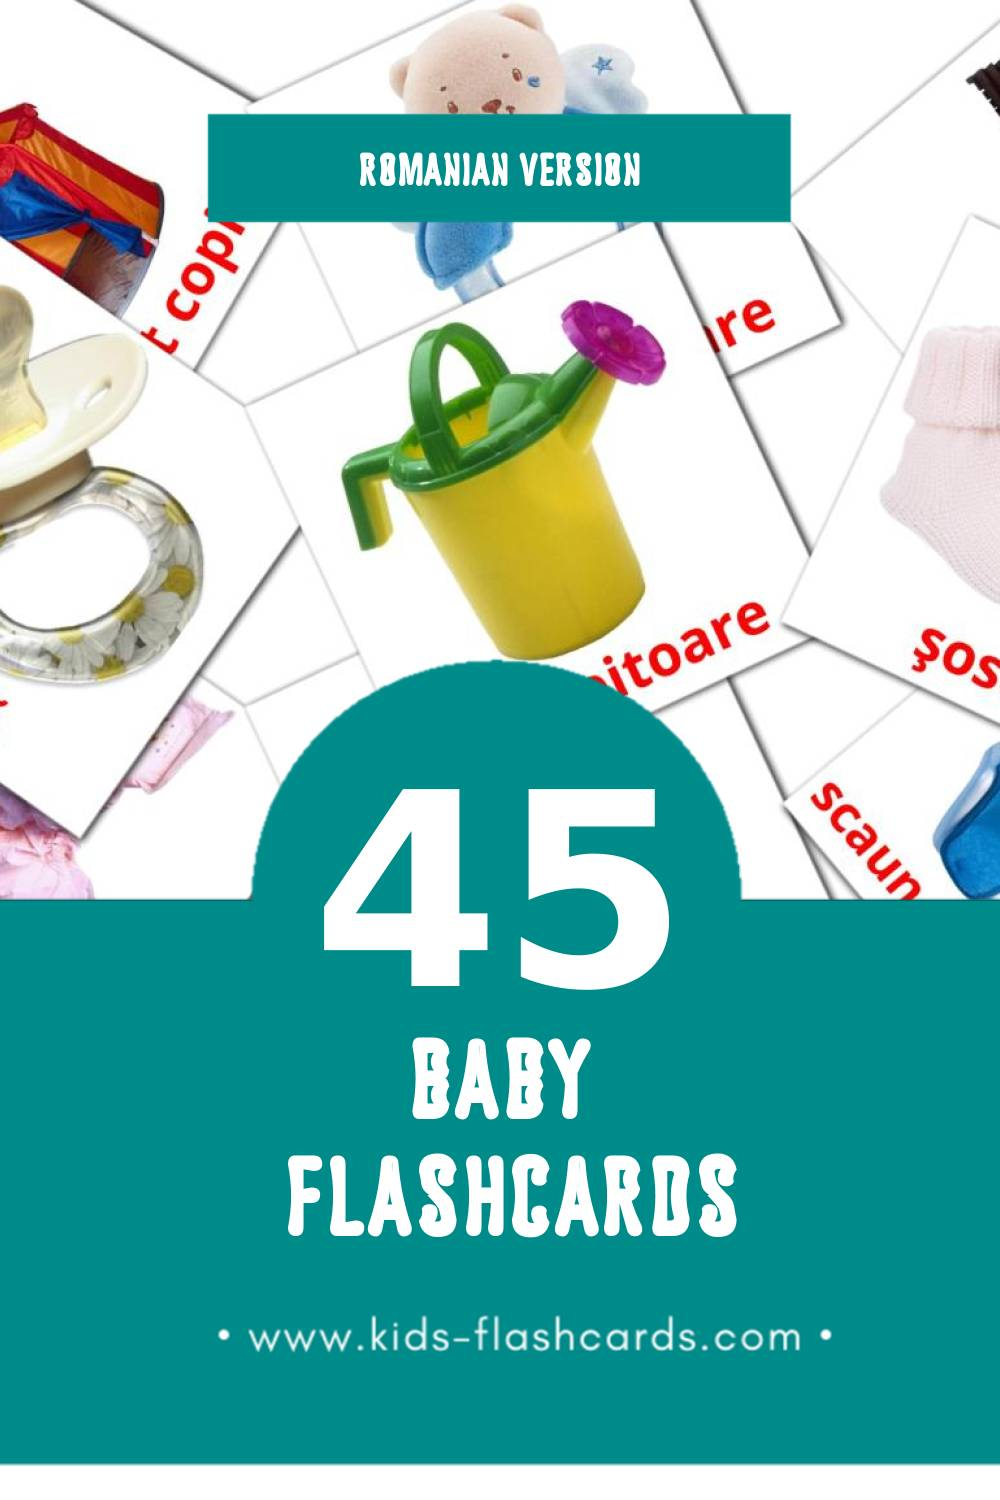 Visual Bebe Flashcards for Toddlers (45 cards in Romanian)